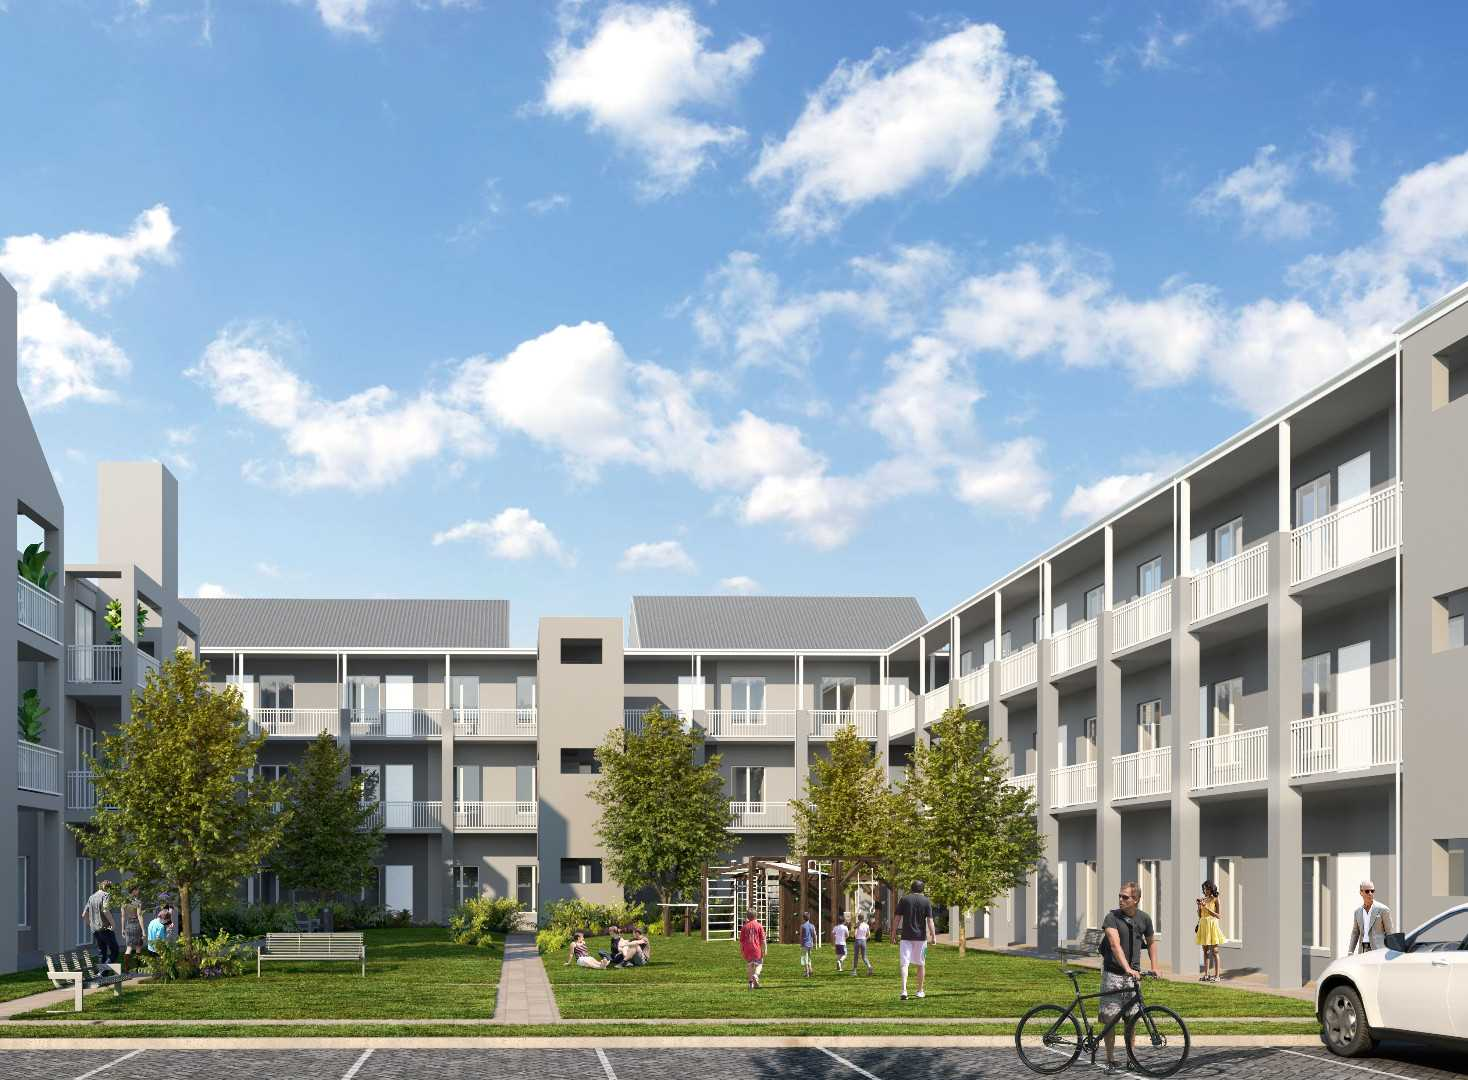 Hawequa two-bedroom units in the ever popular Haasendal